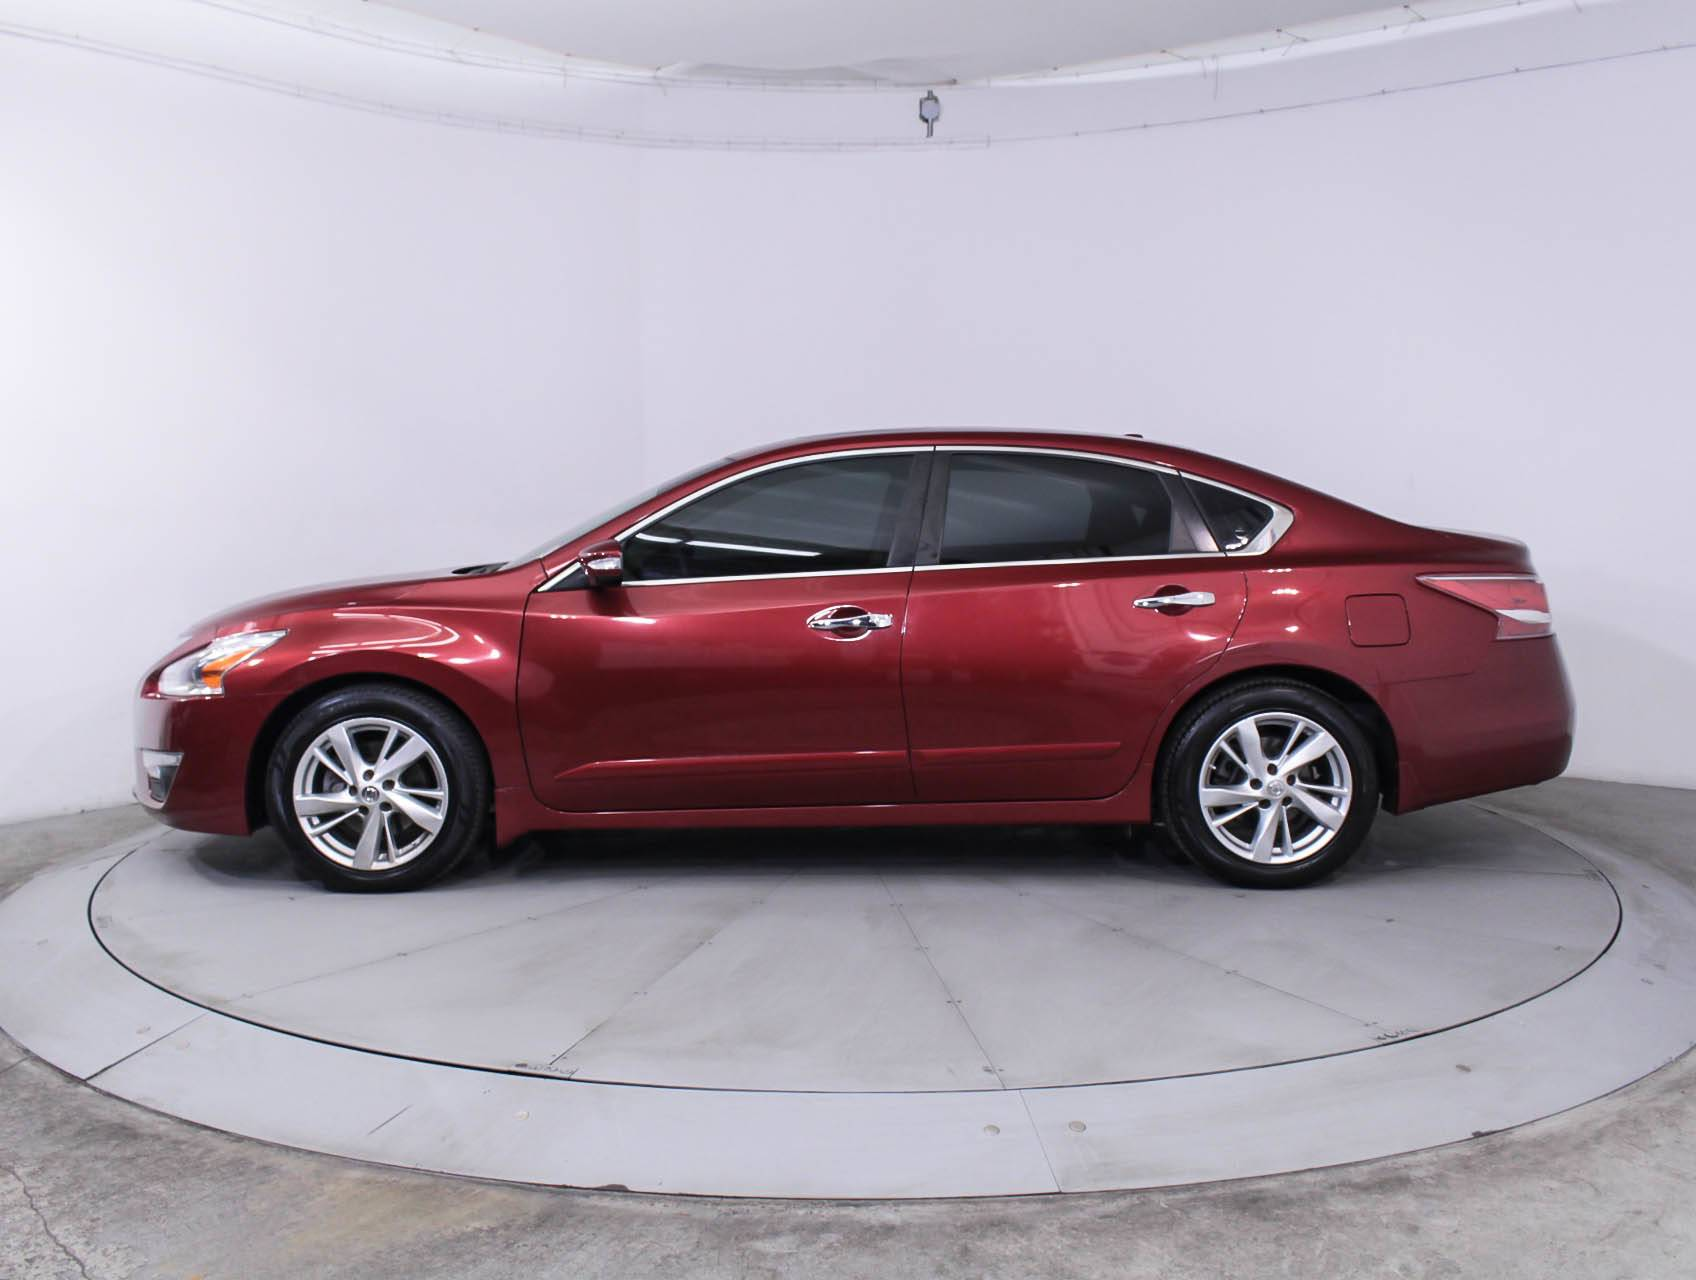 sales dartmouth used auto inventory altima vehicle en in sale kn for s nissan img